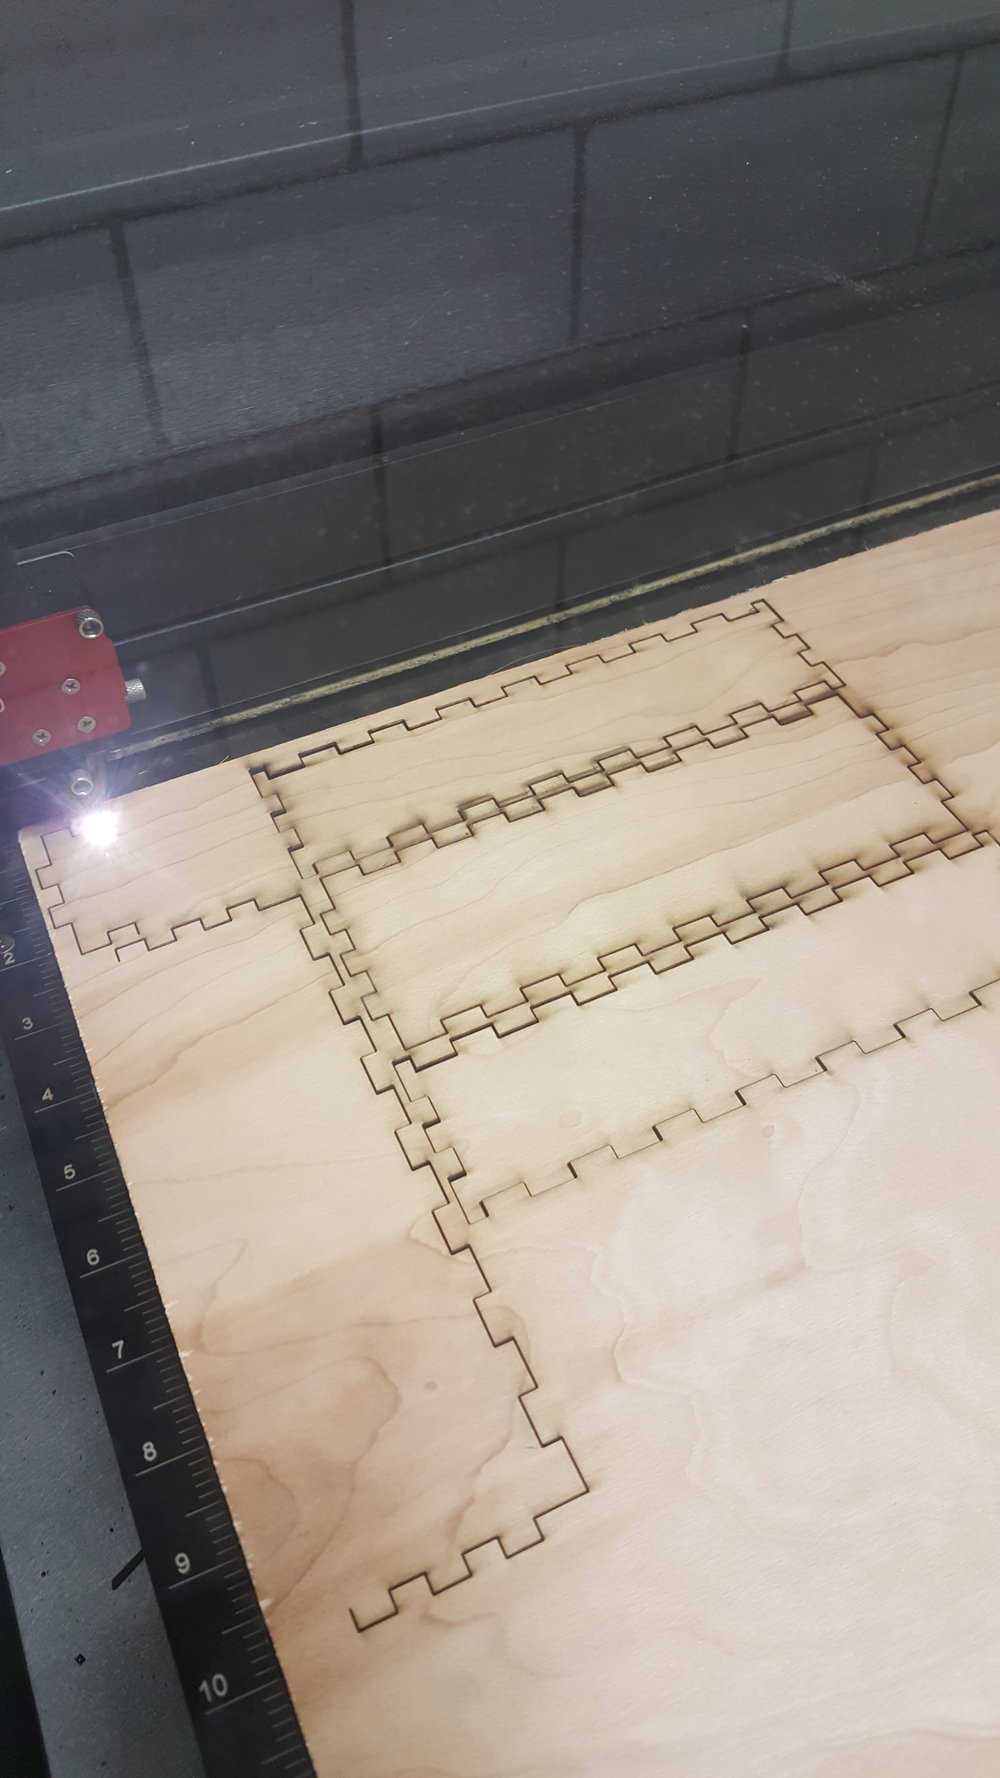 Laser cutting on plywood for high-fidelity prototype